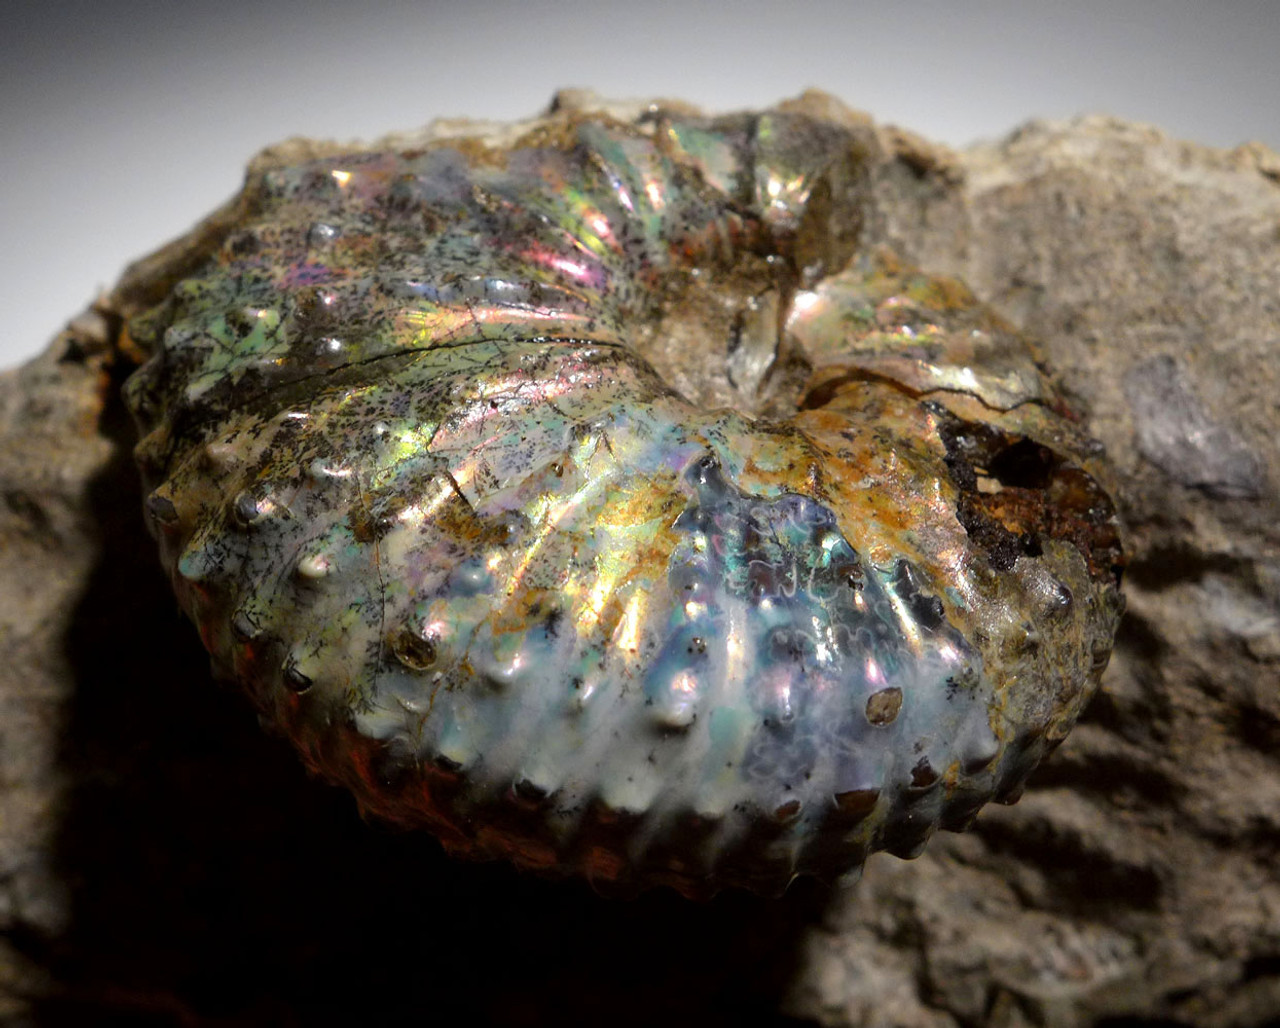 RARE COLORFUL IRIDESCENT AMMONITE DISCOSCAPHITES FOSSIL FROM THE FOX HILLS FORMATION   *AMX402